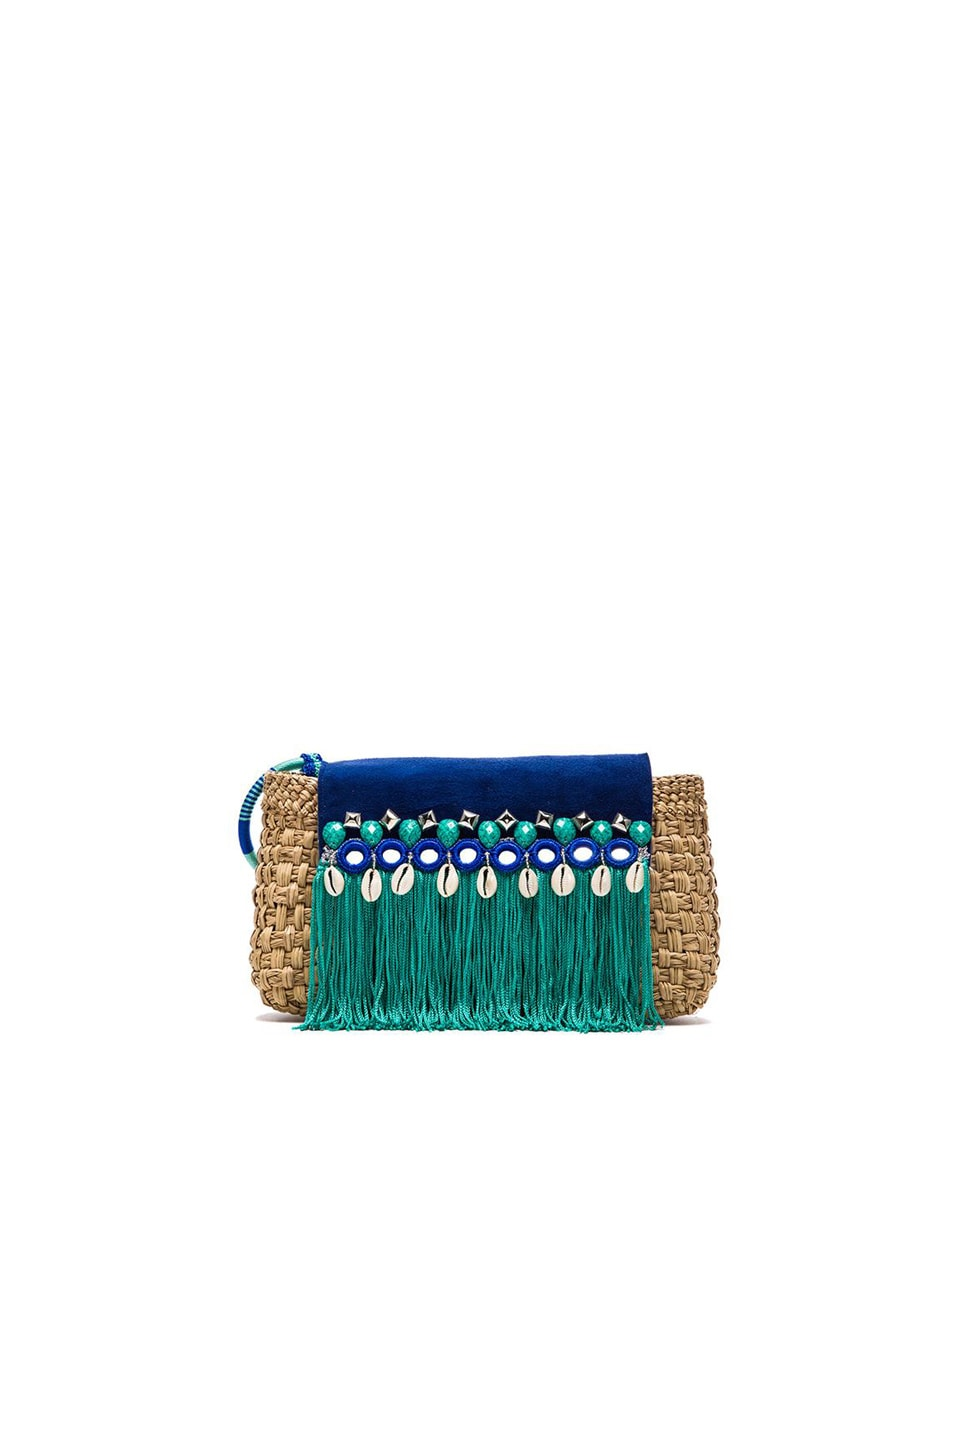 Caffe Woven Clutch in Turquoise & Natural